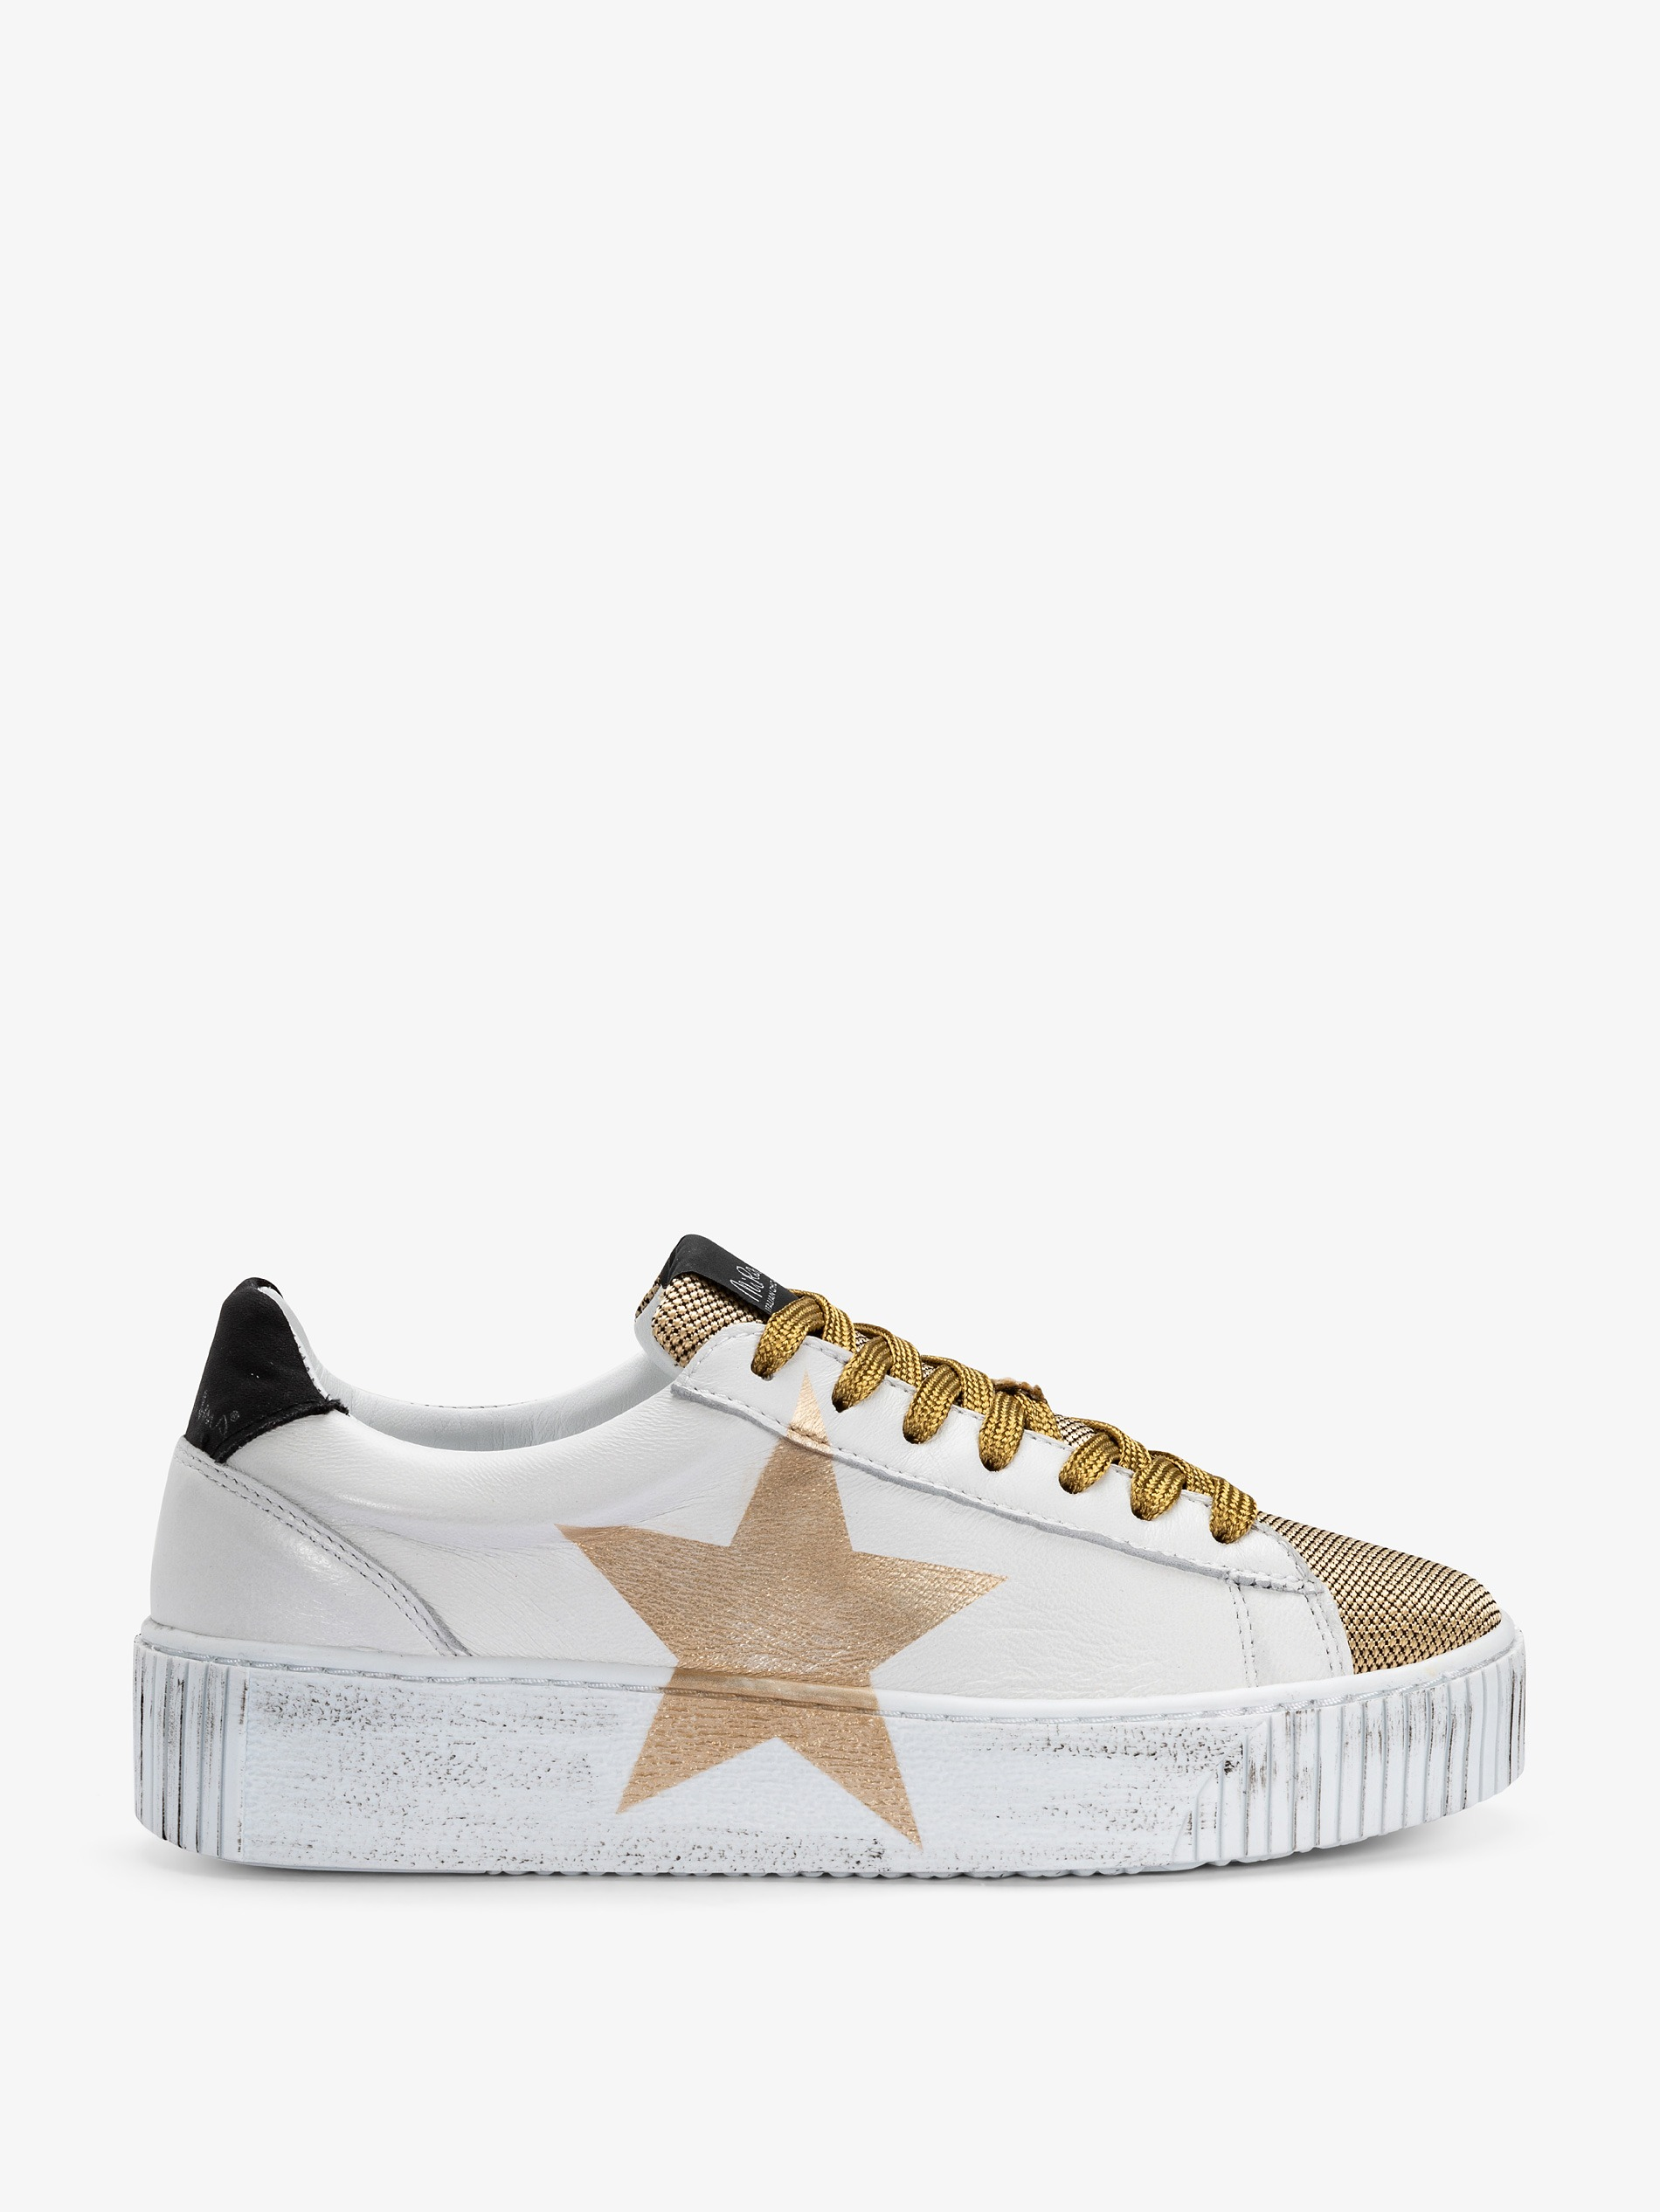 049a0645fd4b Women's white and gold sneakers with star - Trendy sneakers 2019